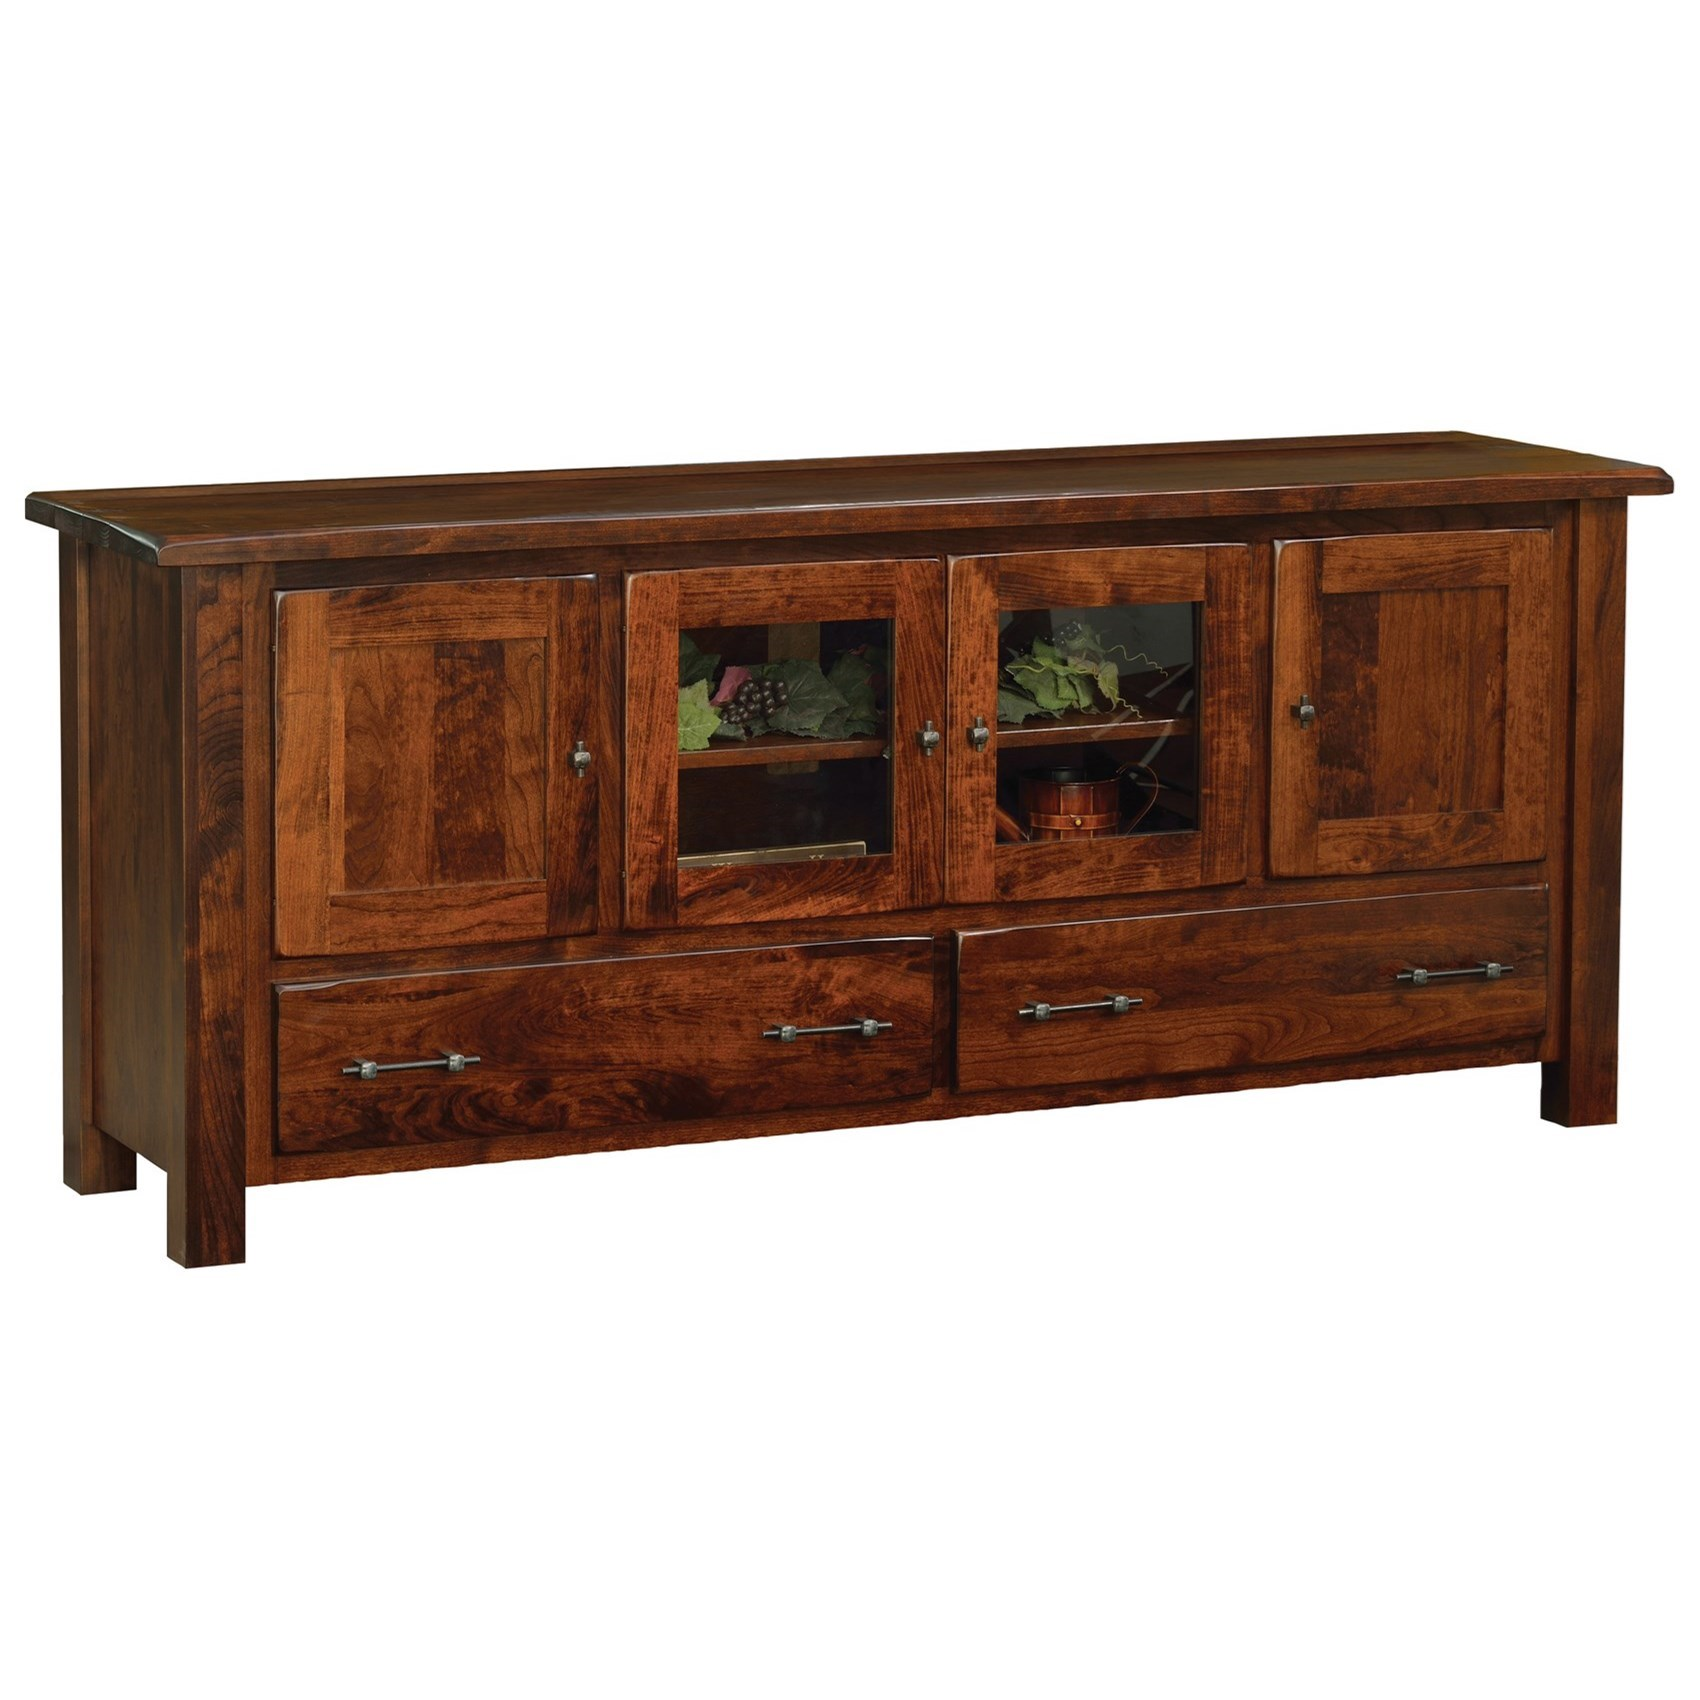 """Barn Floor 70"""" TV Stand by Ashery Oak at Saugerties Furniture Mart"""